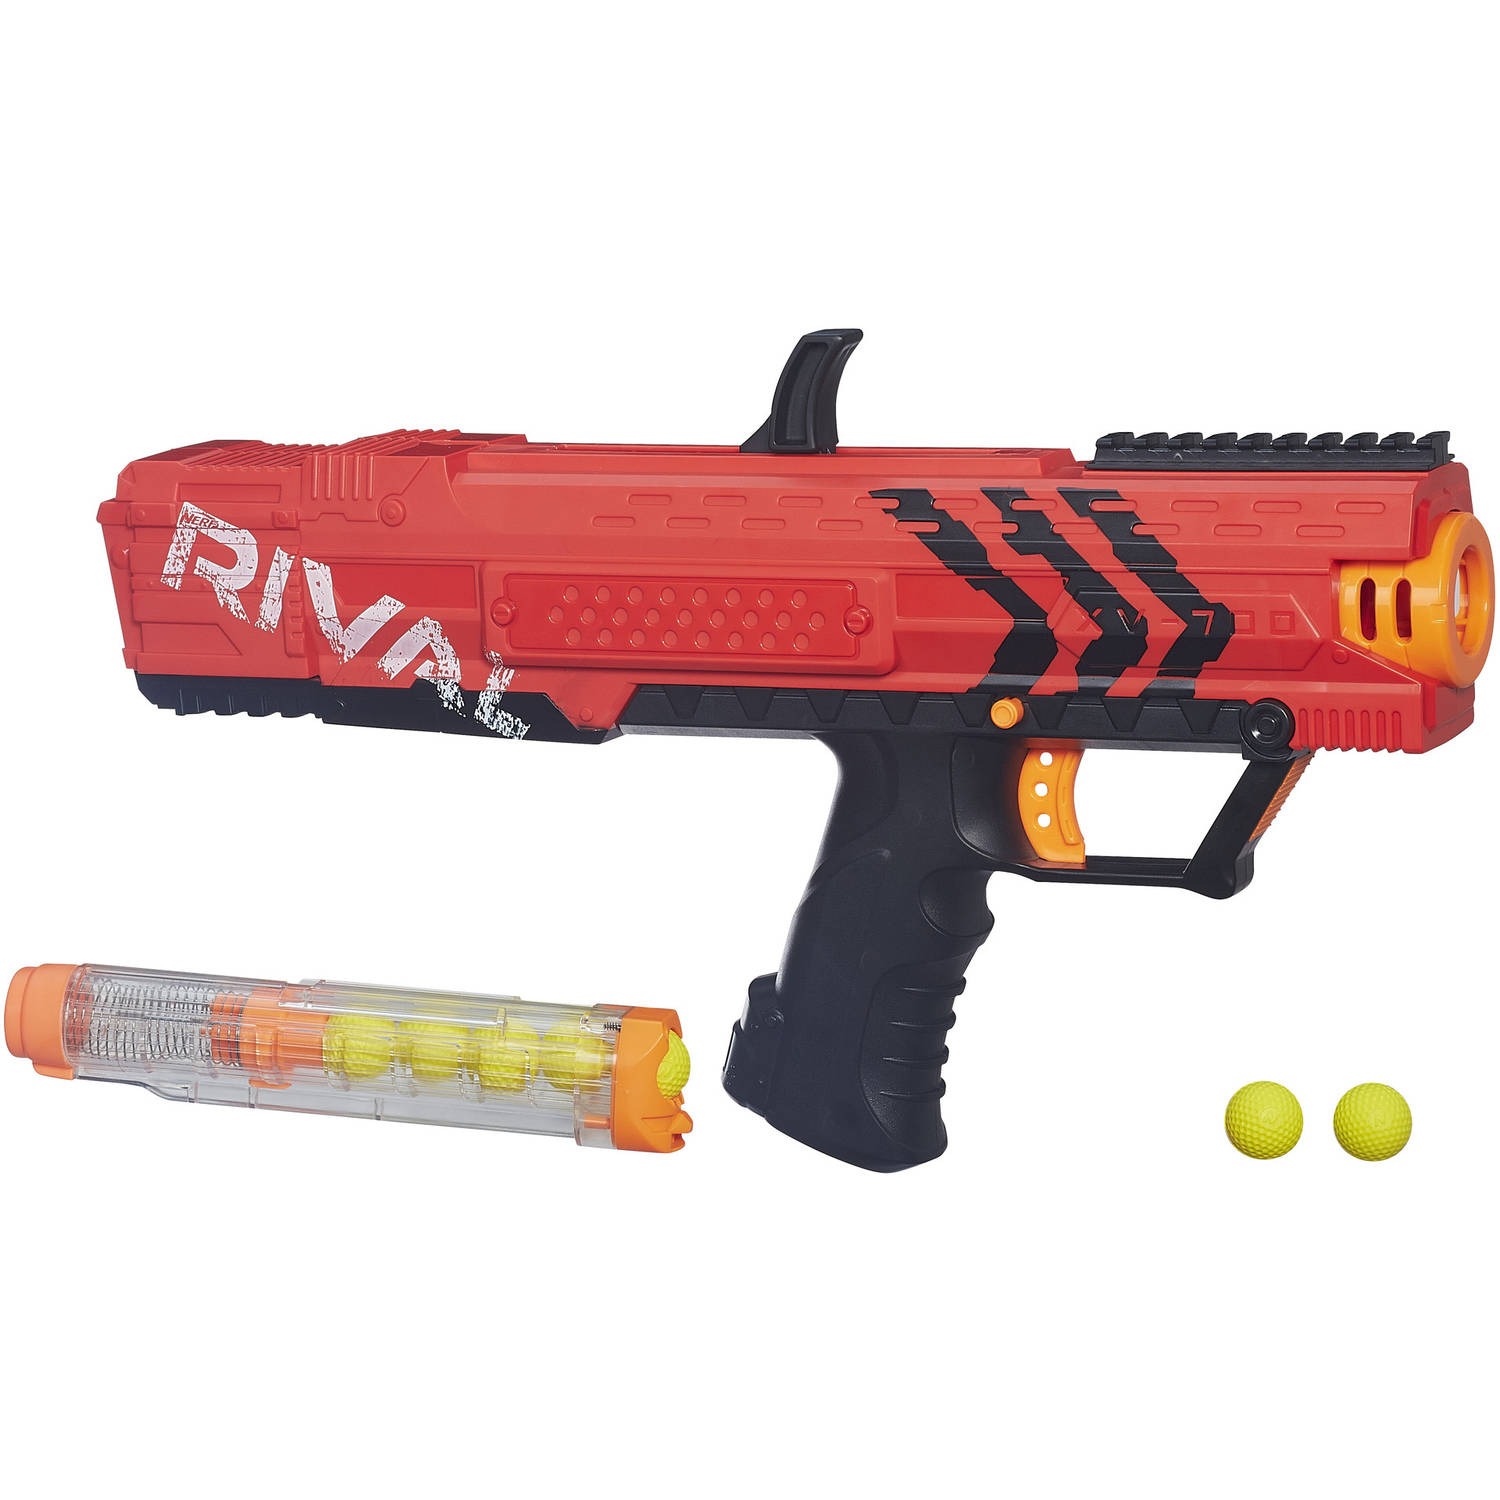 Nerf Rival Apollo XV-700 Blaster (Red) by Hasbro